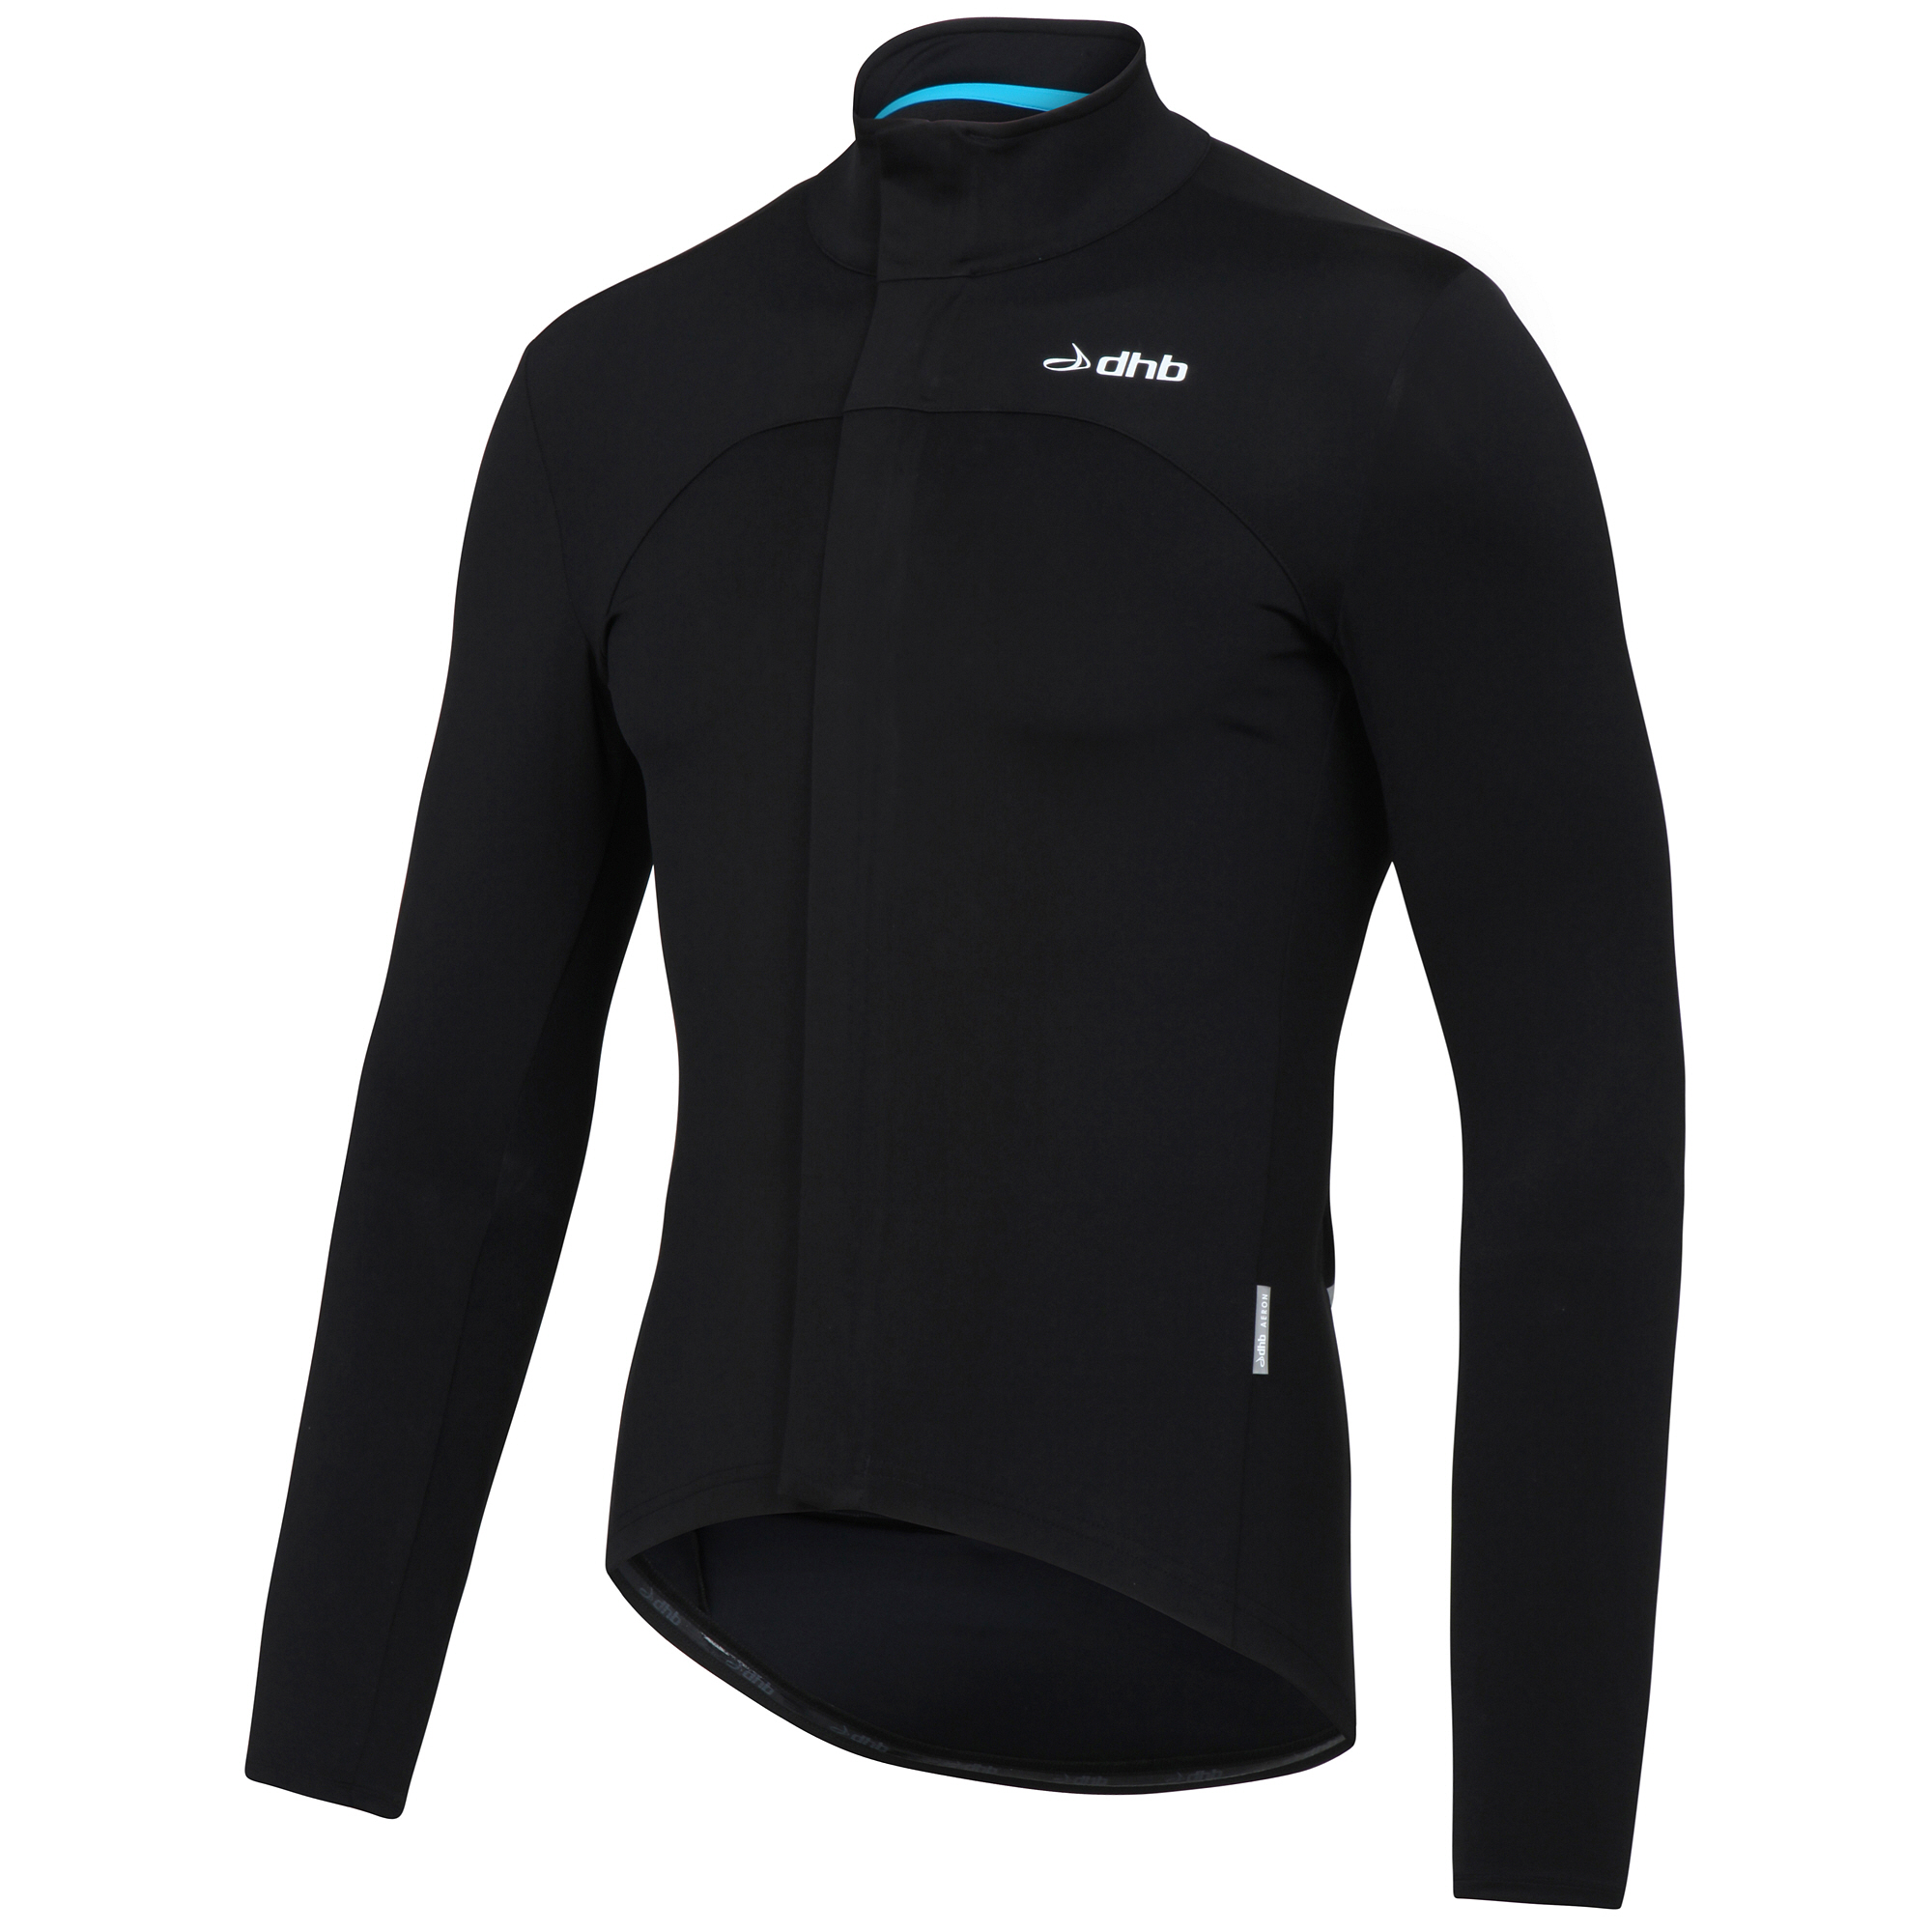 dhb Aeron RD Long Sleeve Jersey | Jerseys